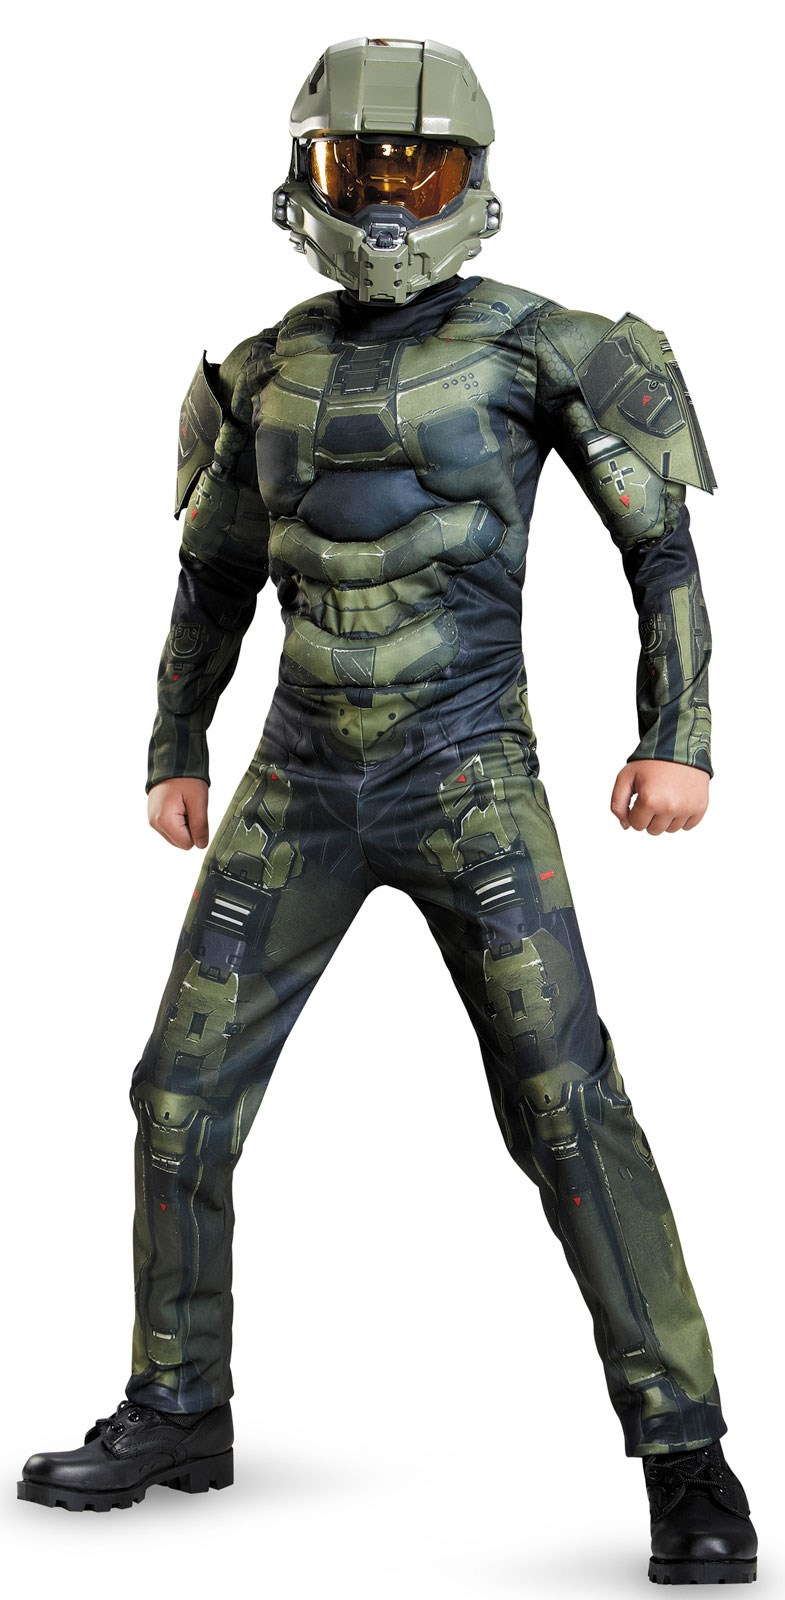 Halo: Master Chief Muscle Costume For Kids | BuyCostumes.com